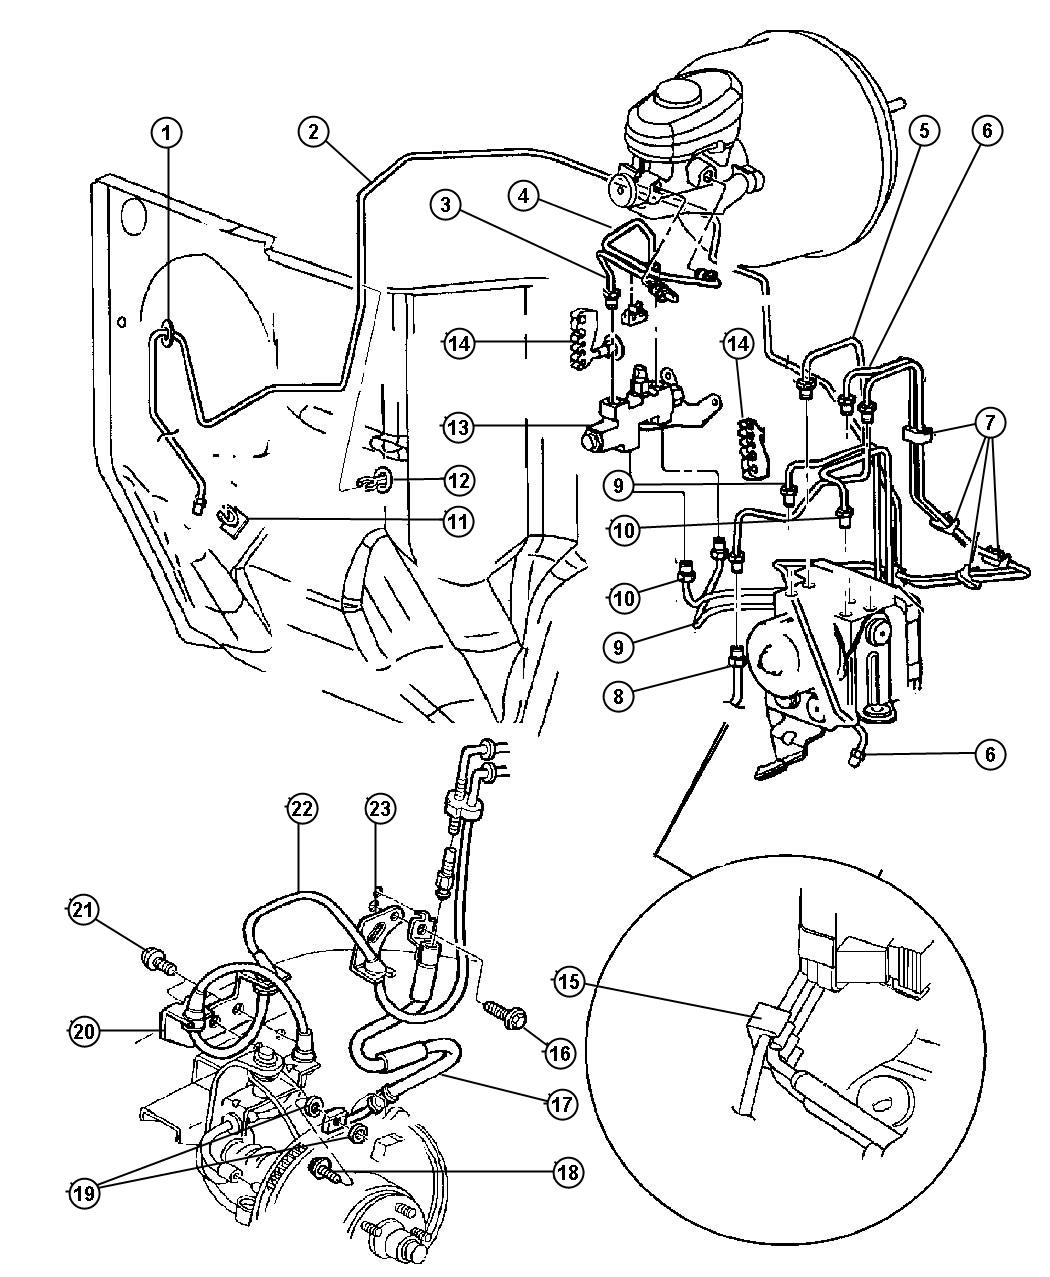 Service manual [2008 Jeep Grand Cherokee Diagram Showing